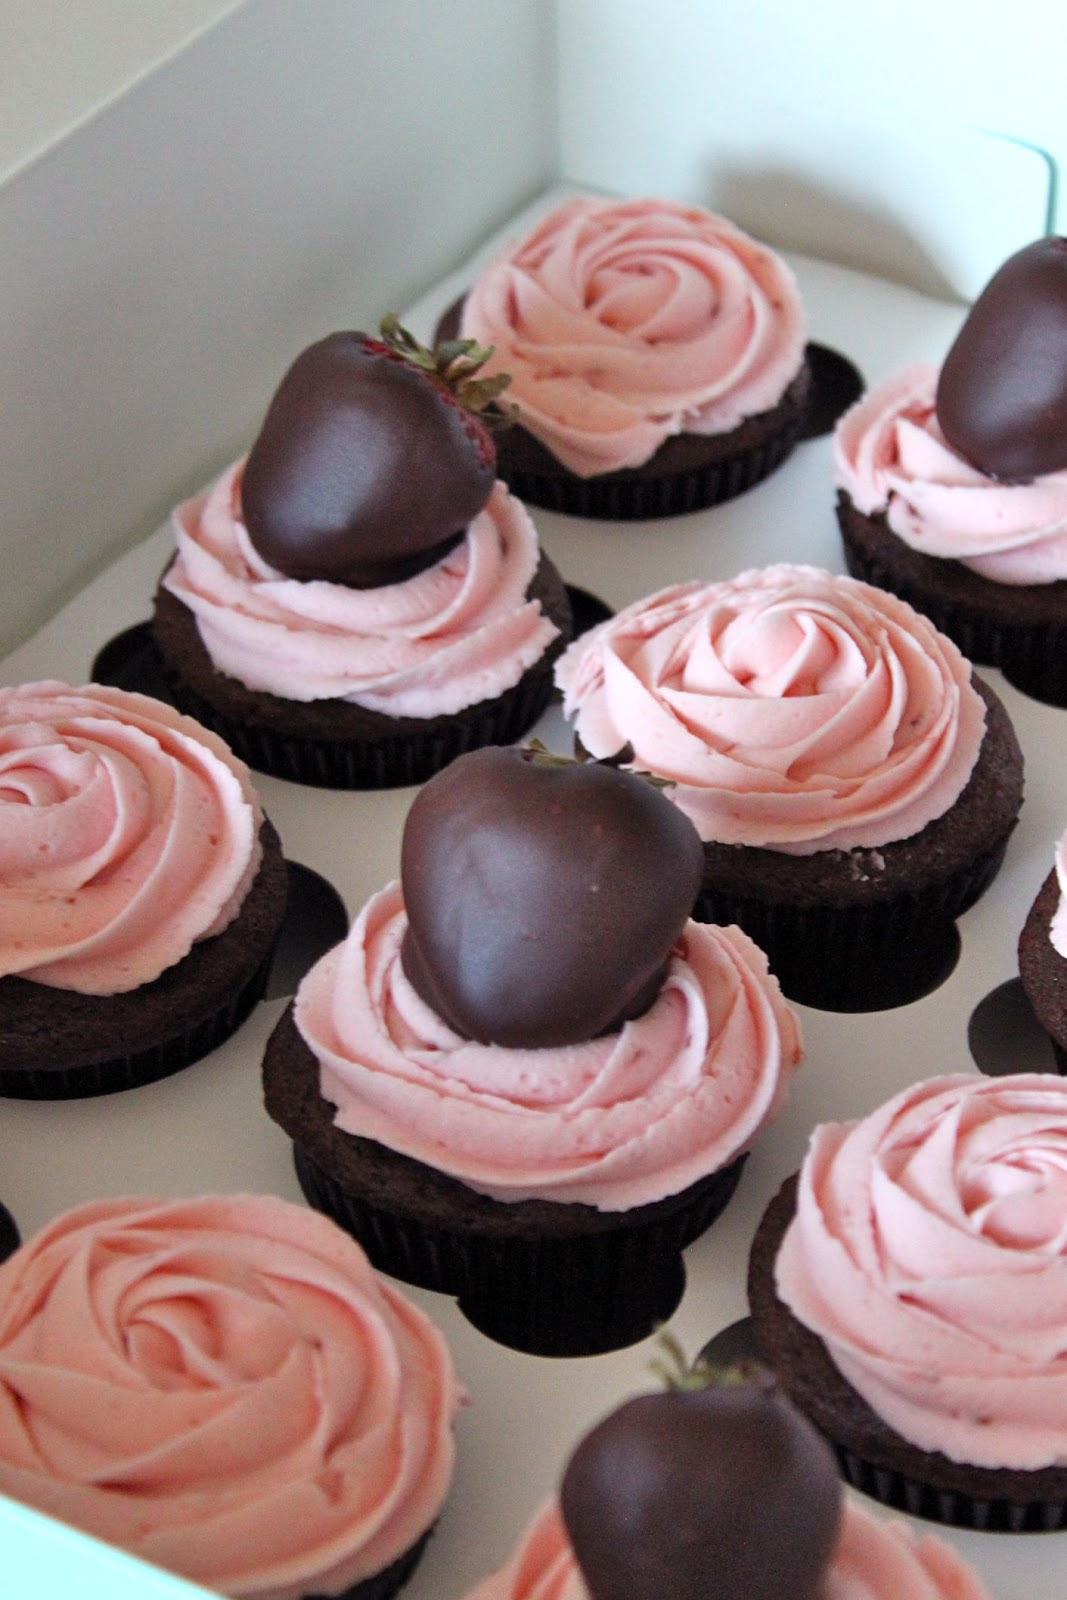 Baked Perfection Chocolate Covered Strawberry Cupcakes